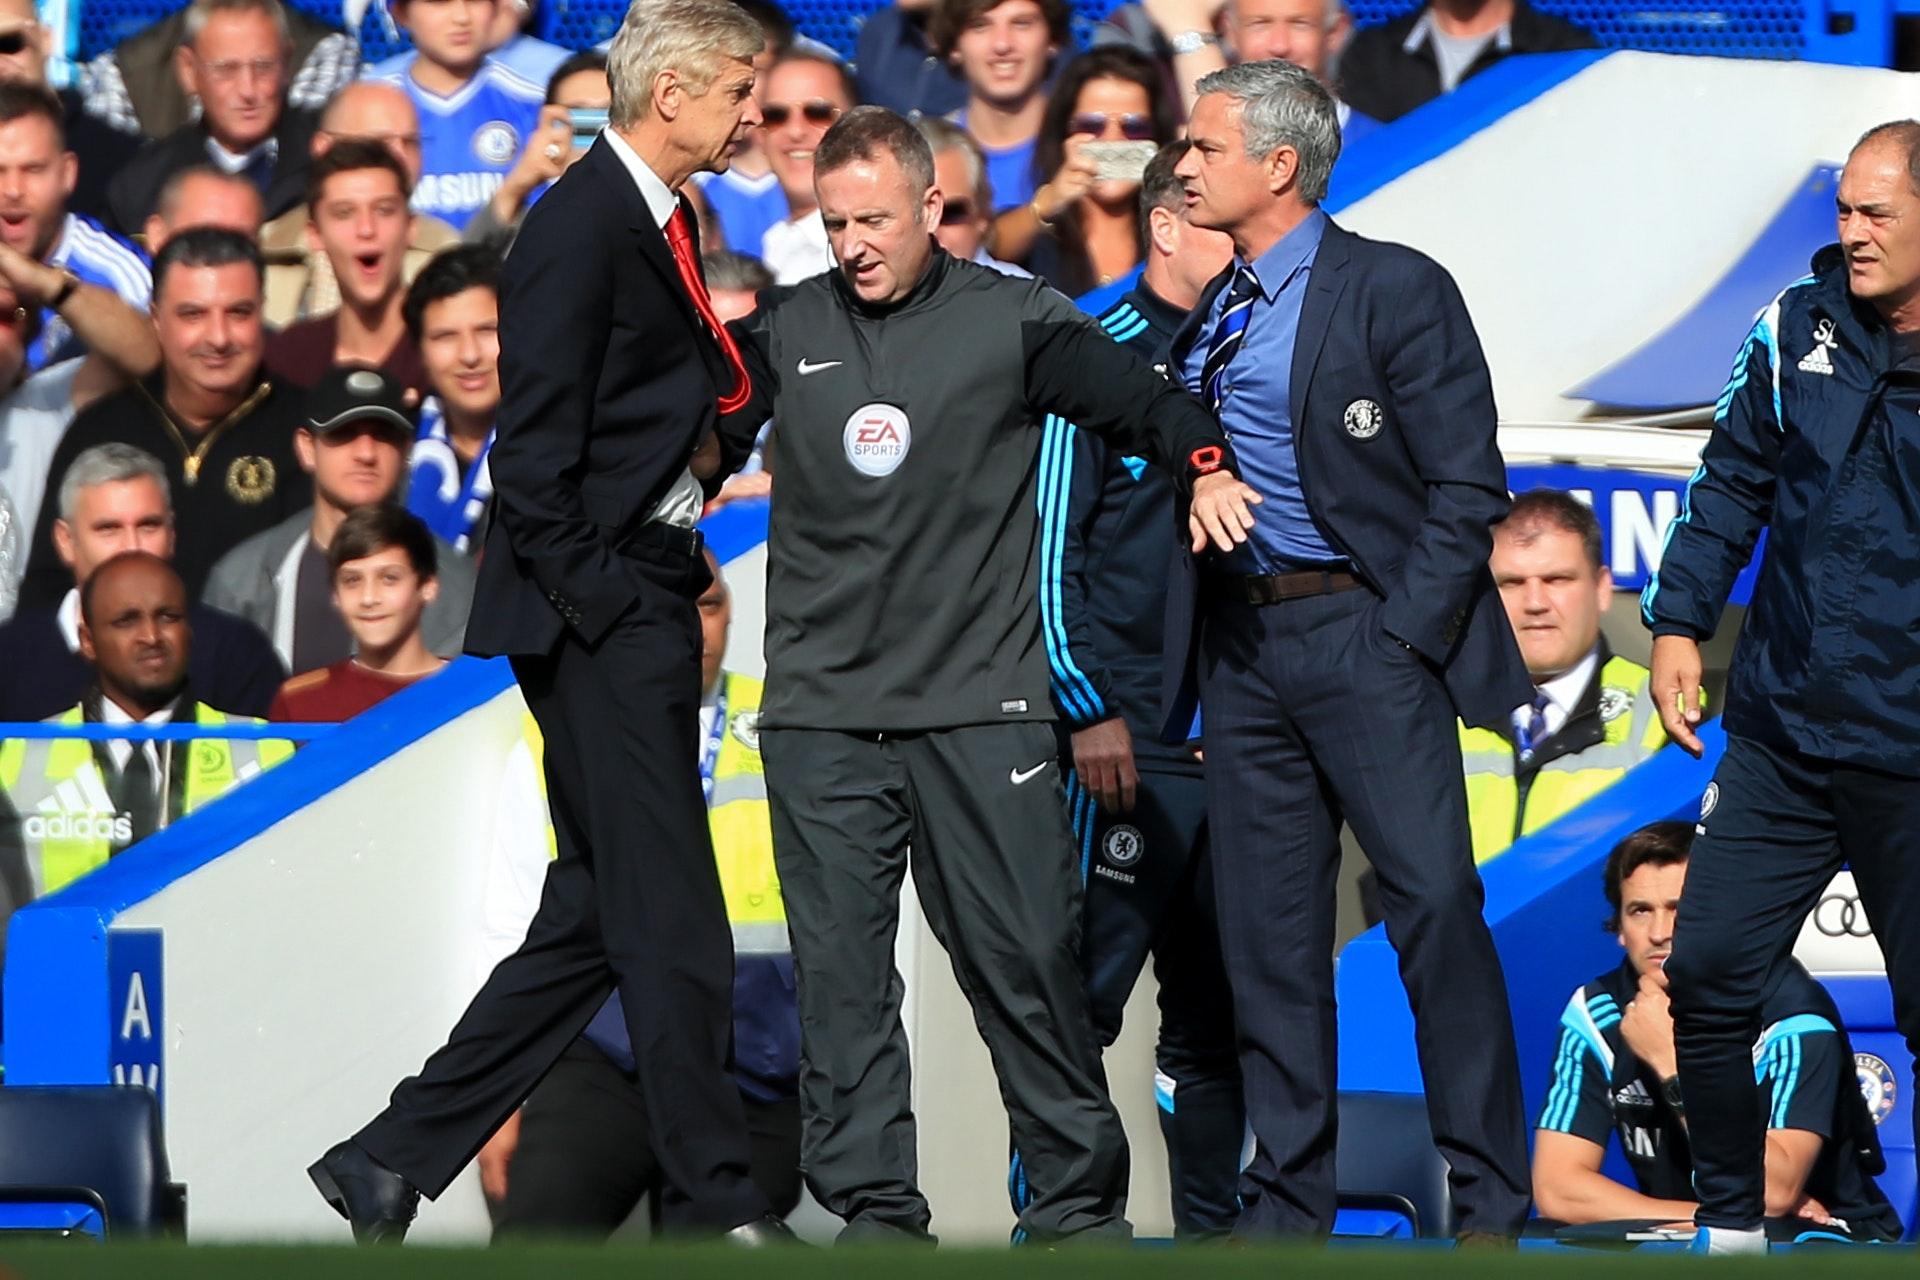 Arsene Wenger (left) and Jose Mourinho (right) had an often heated rivalry